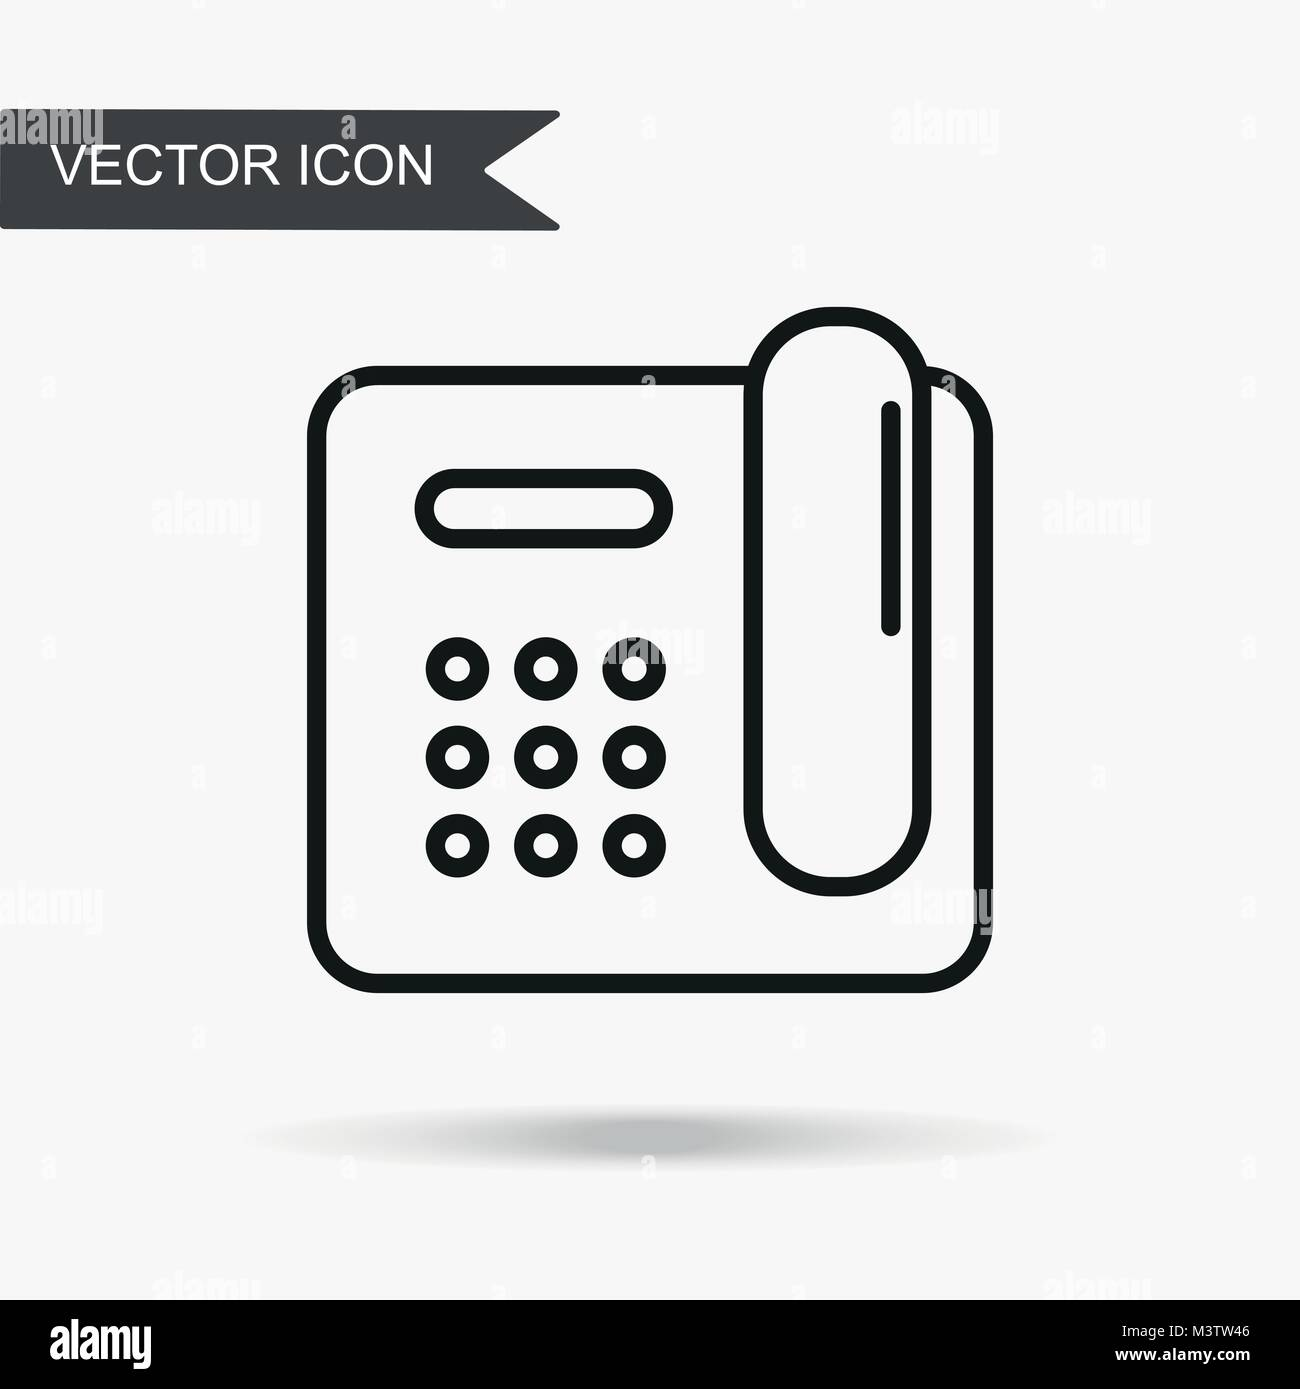 Modern and simple vector illustration of an old home wired phone ...